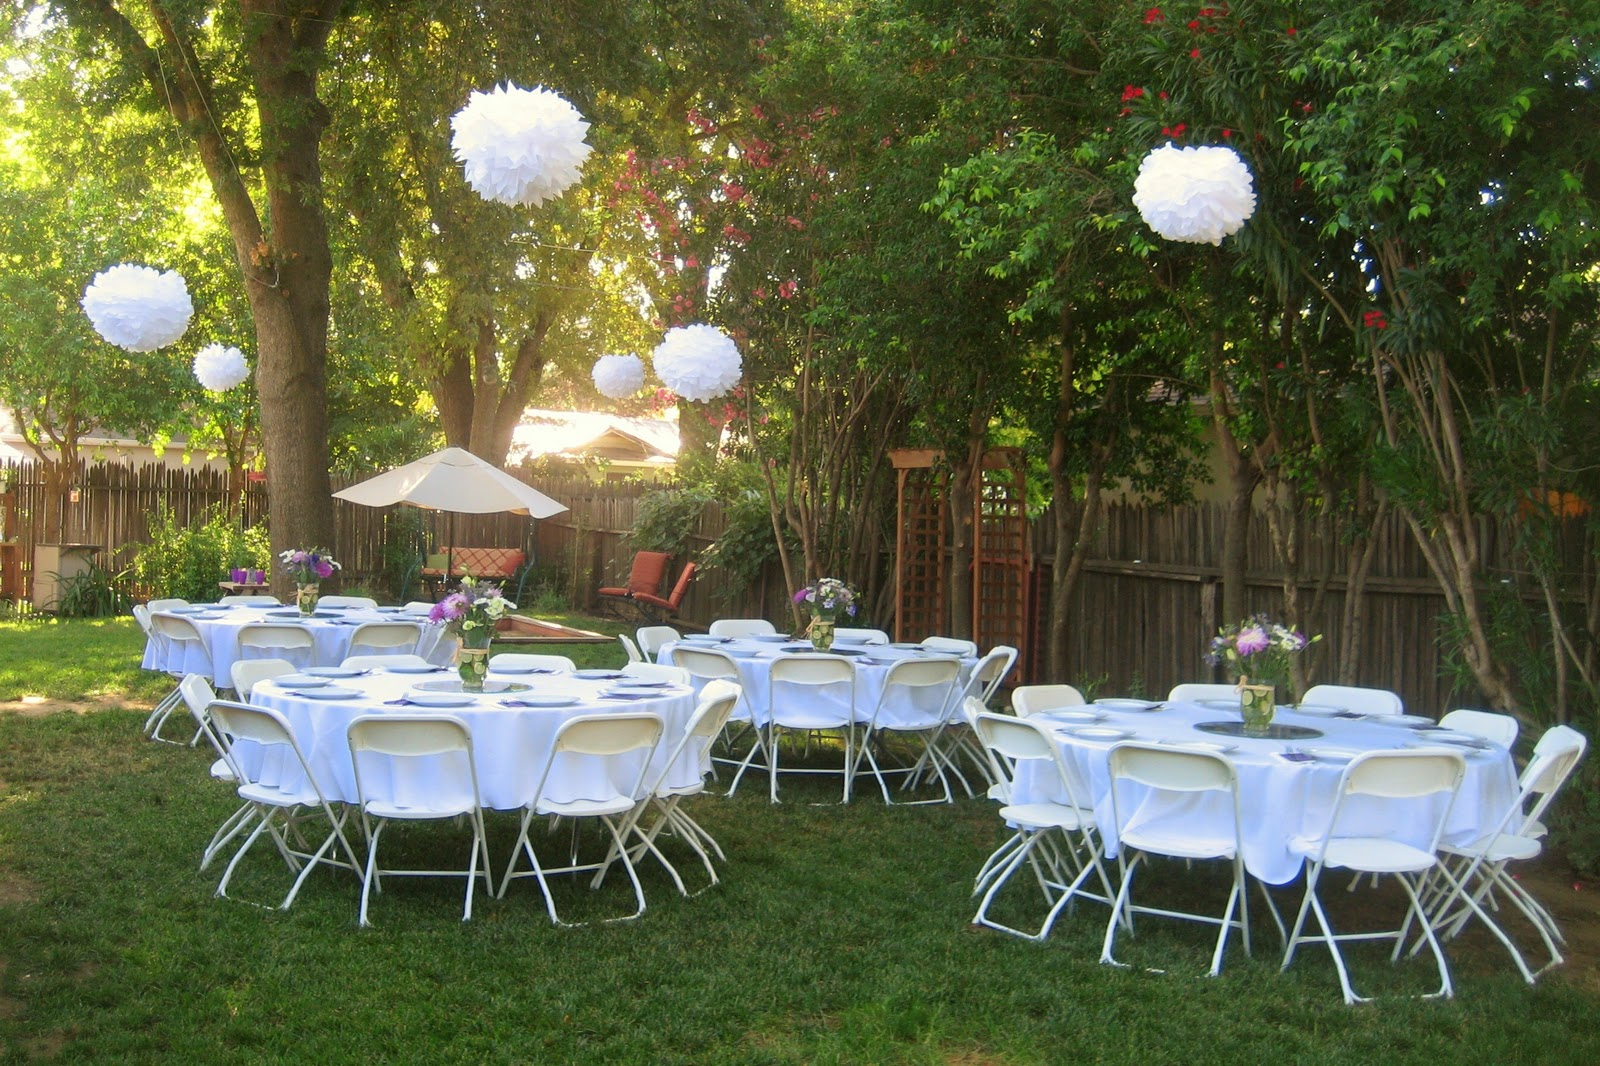 99 Wedding Ideas Backyard Wedding Ceremony Ideas for 11 Clever Tricks of How to Build Small Backyard Wedding Ceremony Ideas